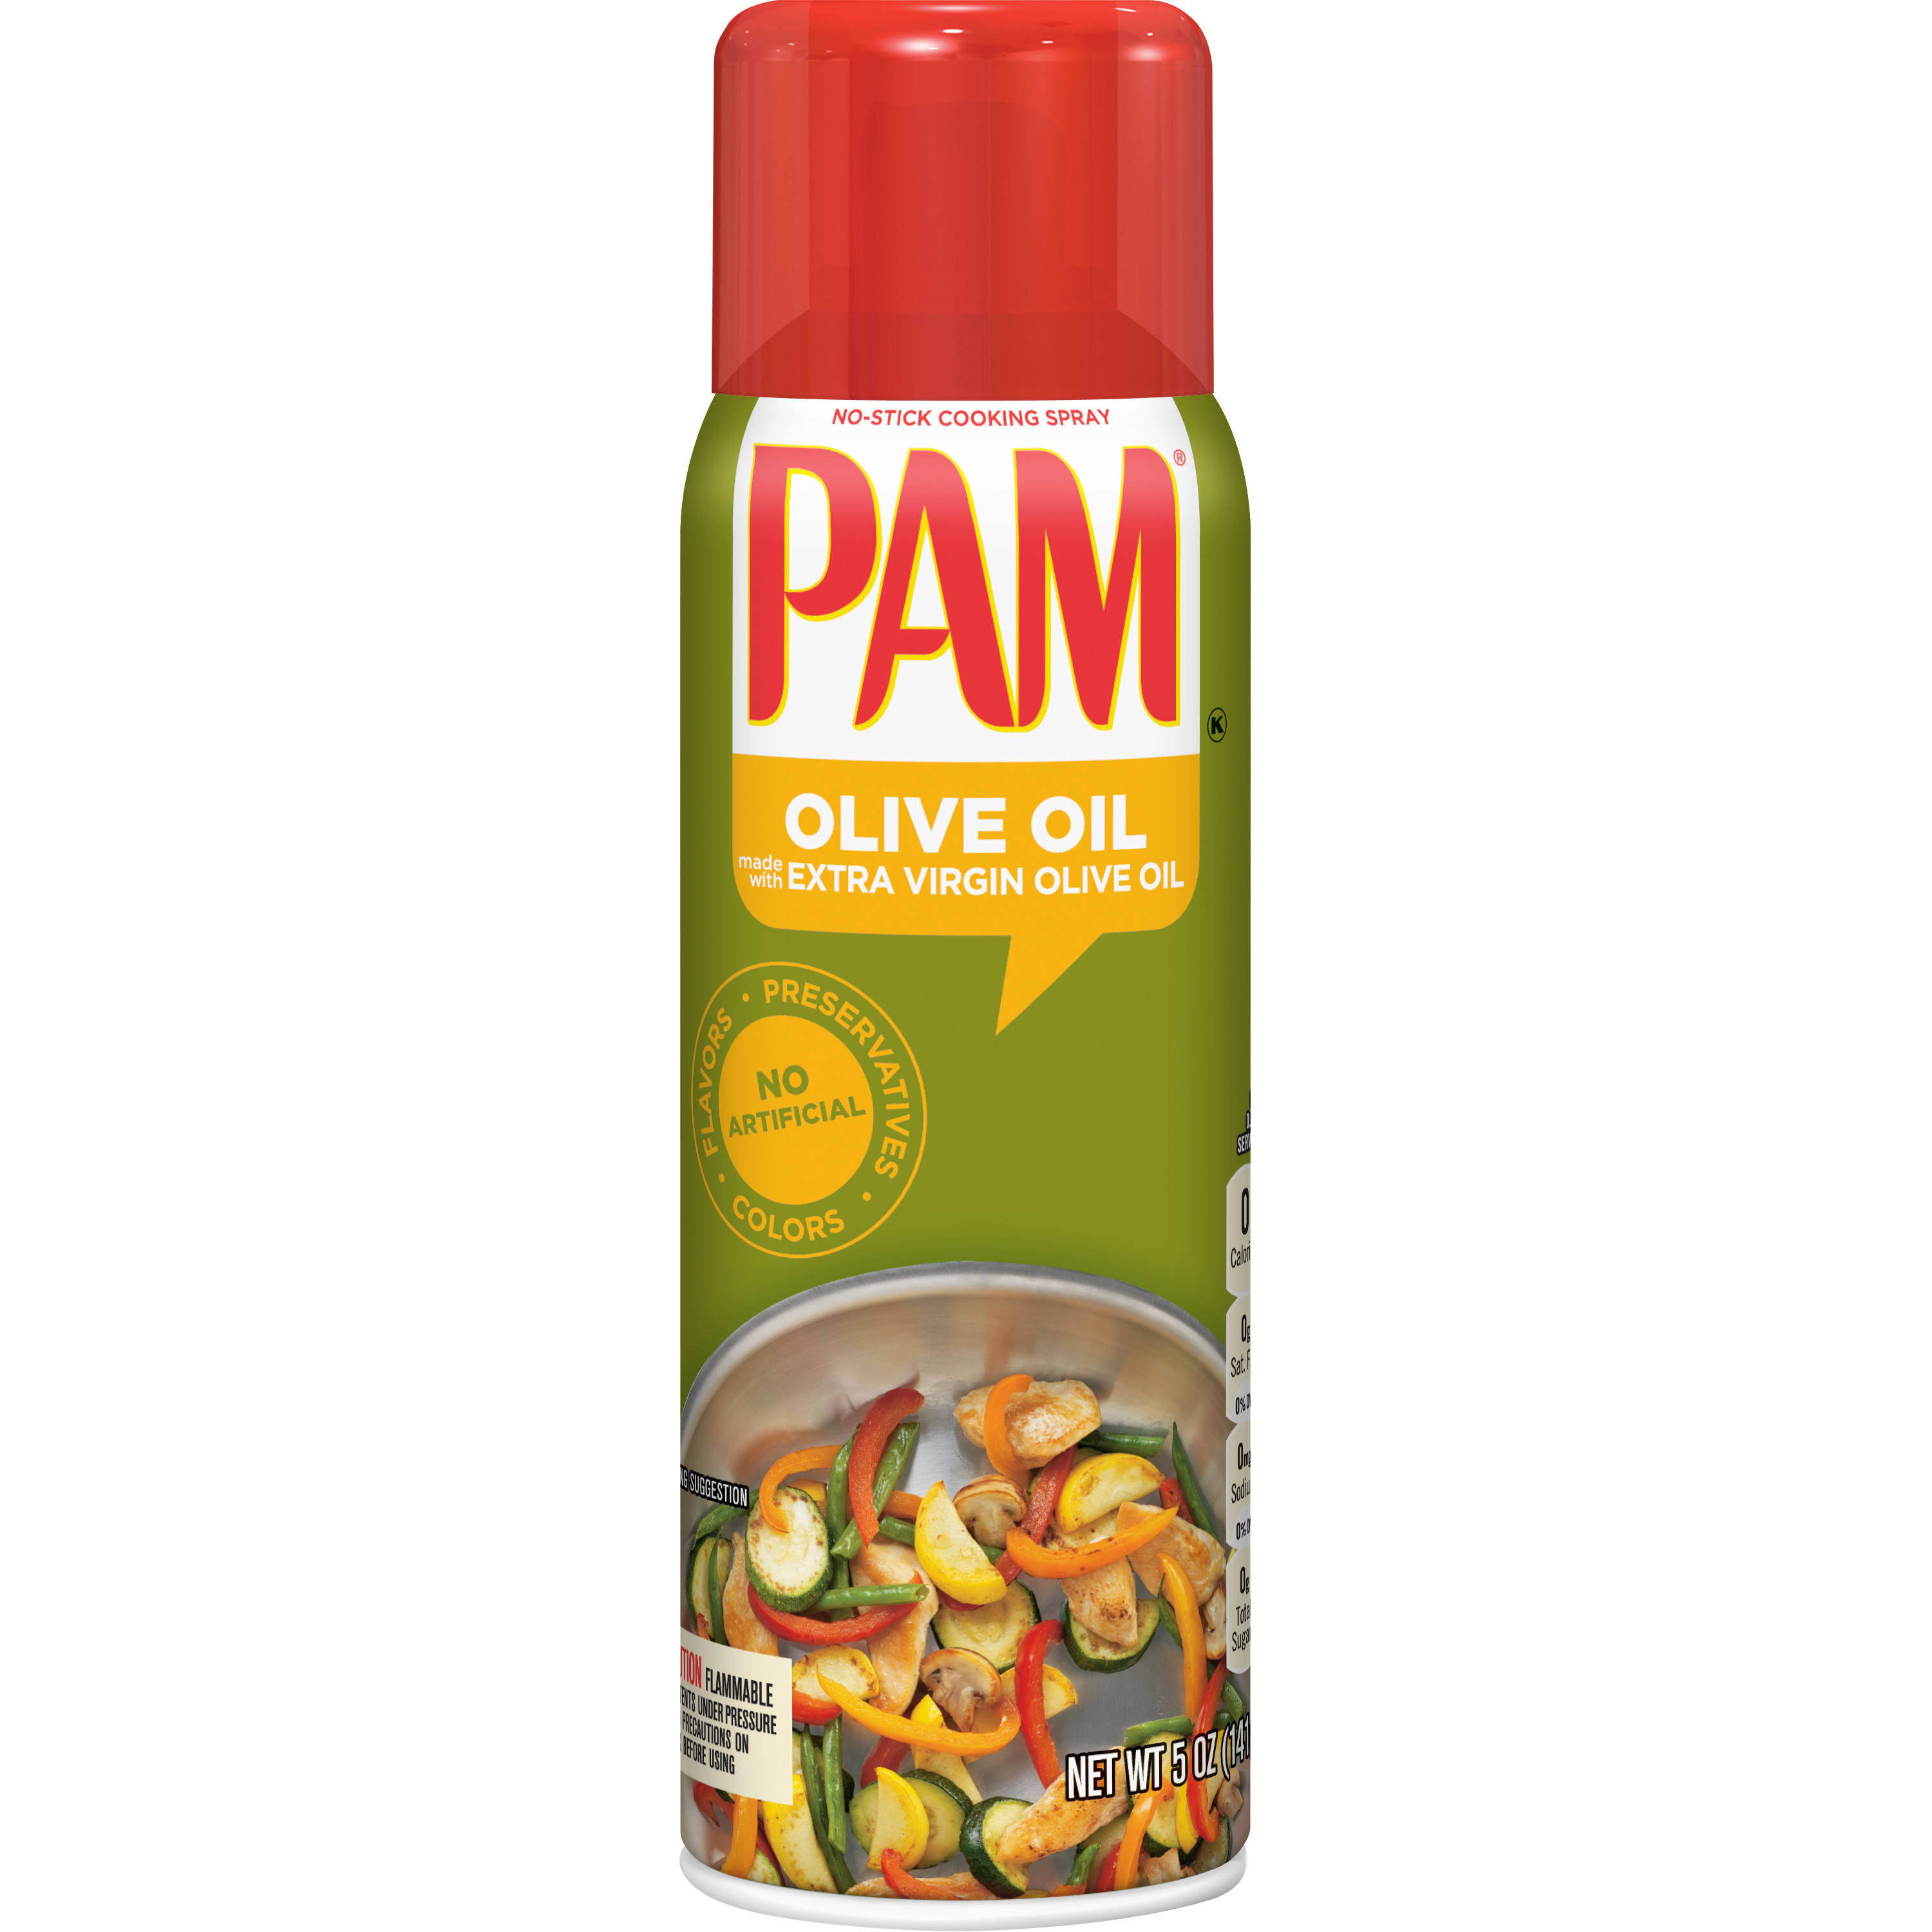 Pam No Stick Purely Olive Oil Cooking Spray - 5oz